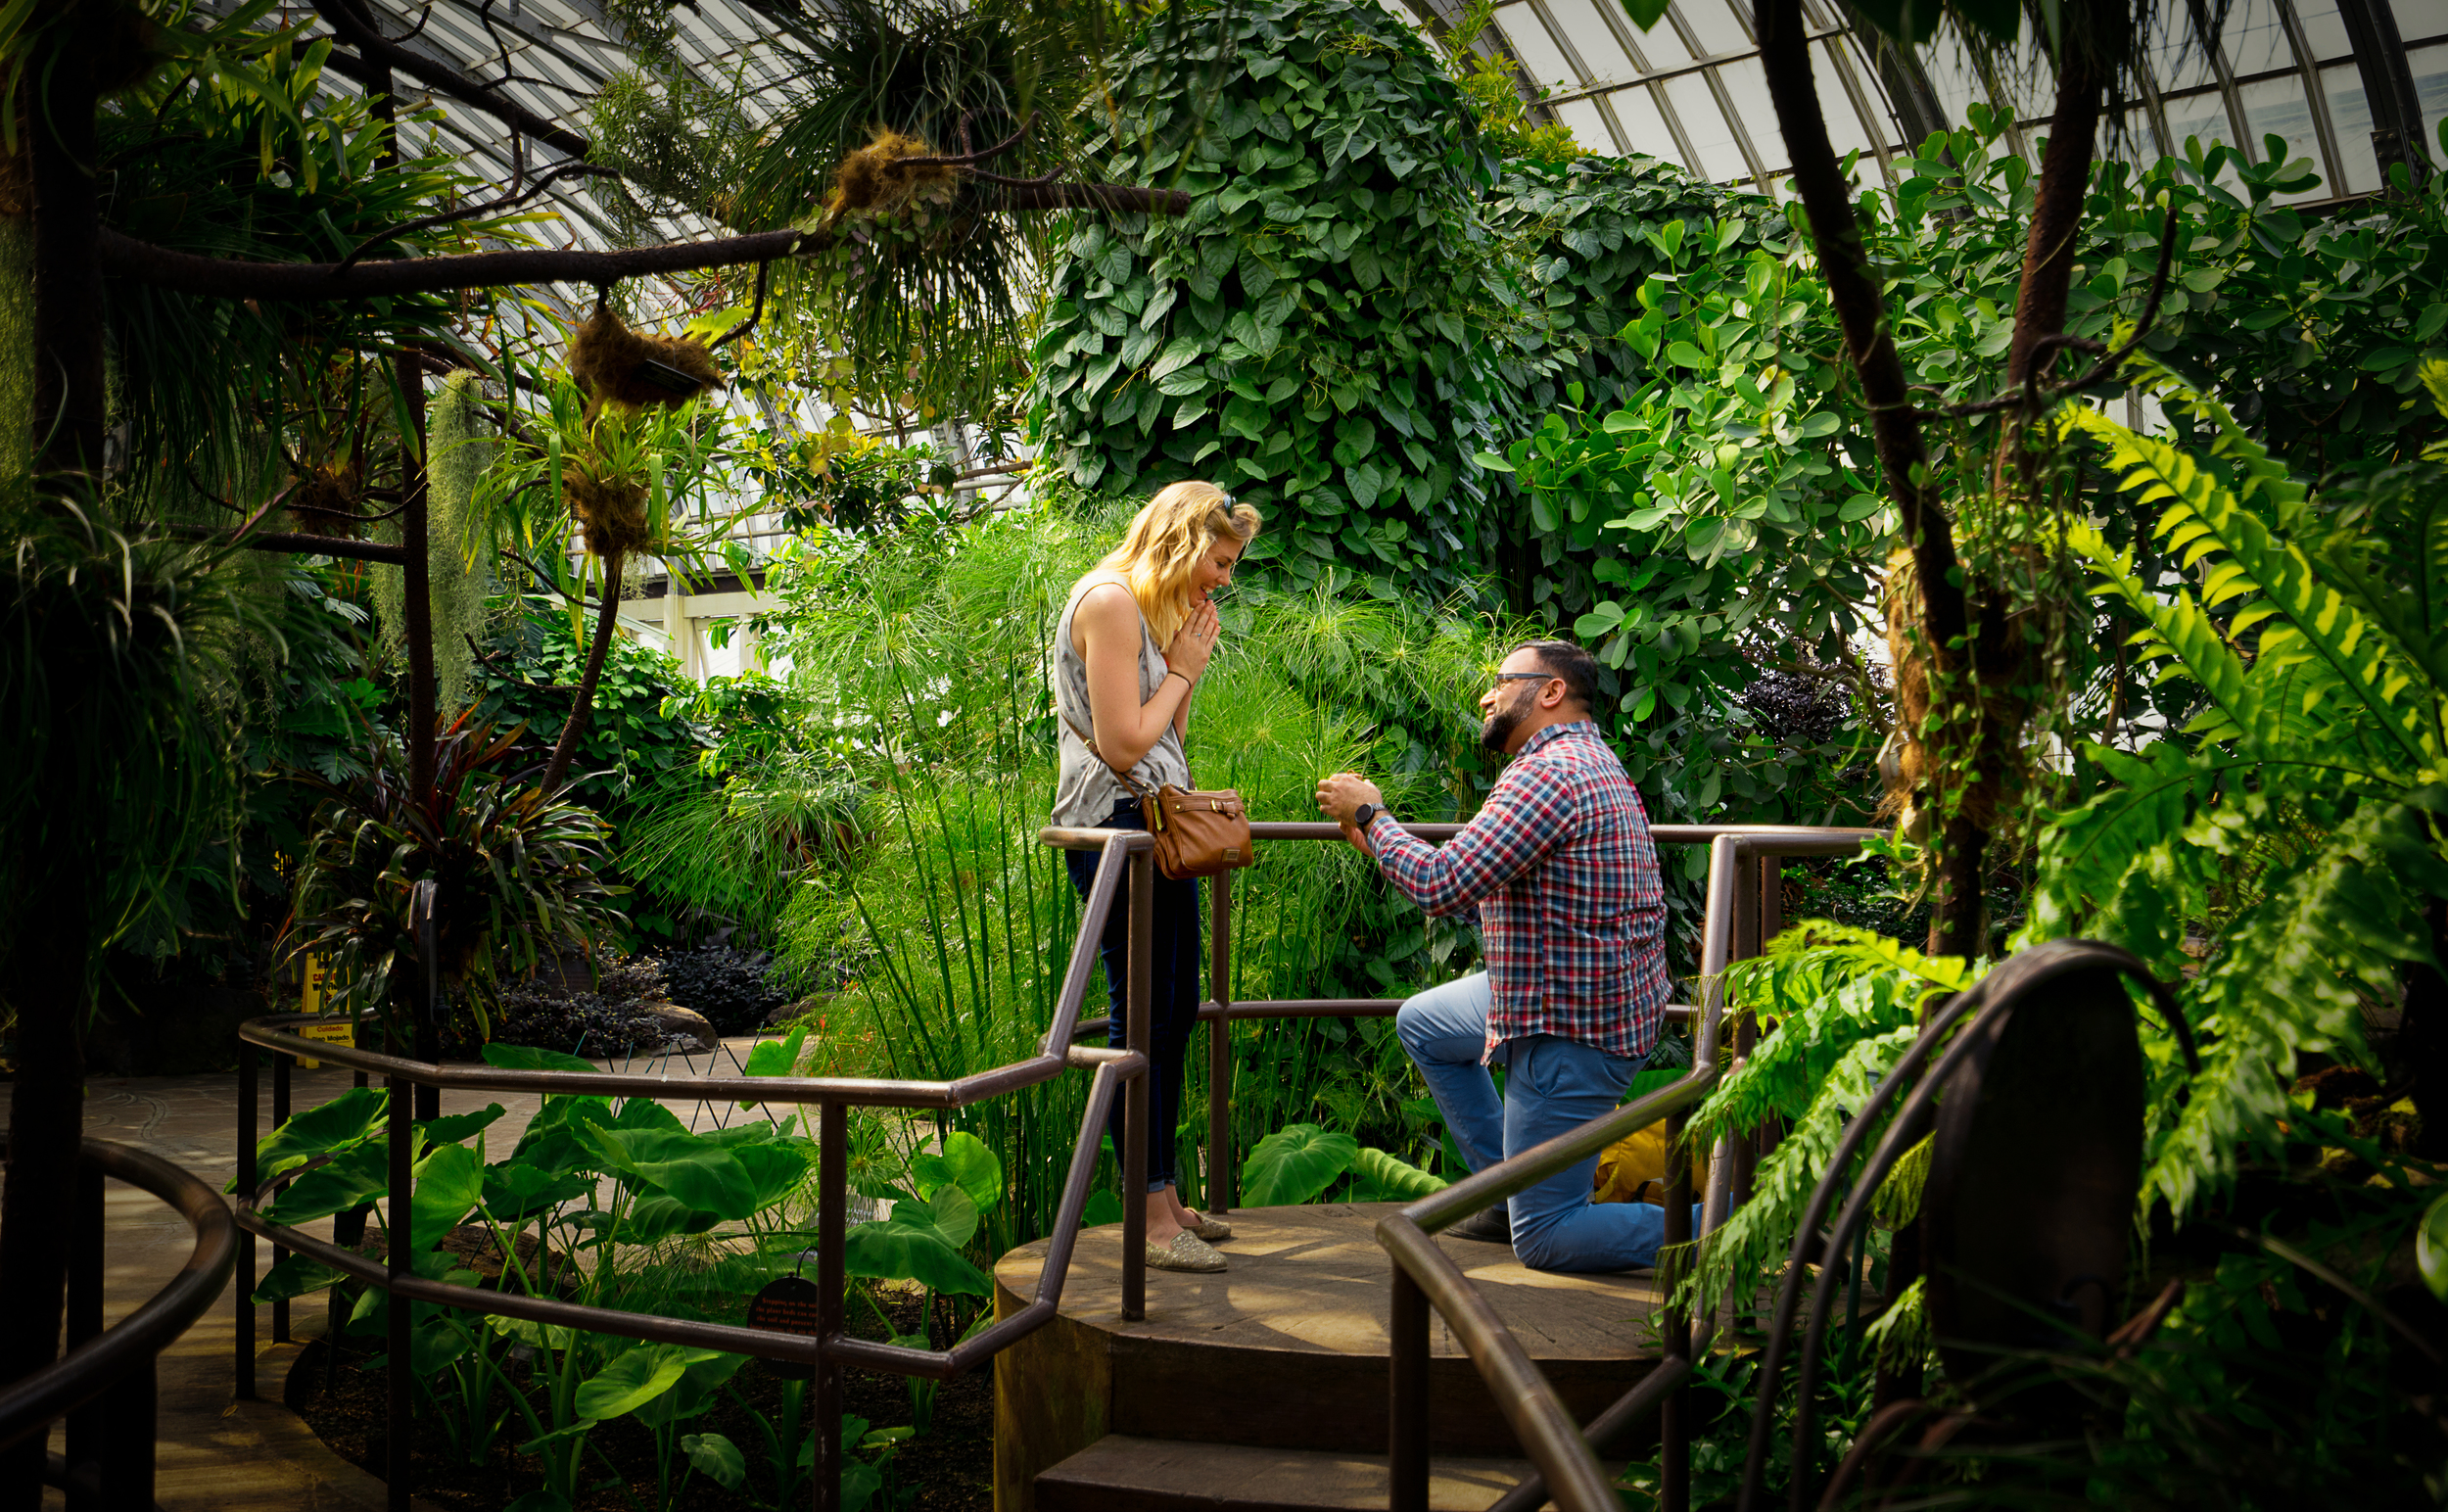 Surprise Proposal at Garfield Park Conservatory